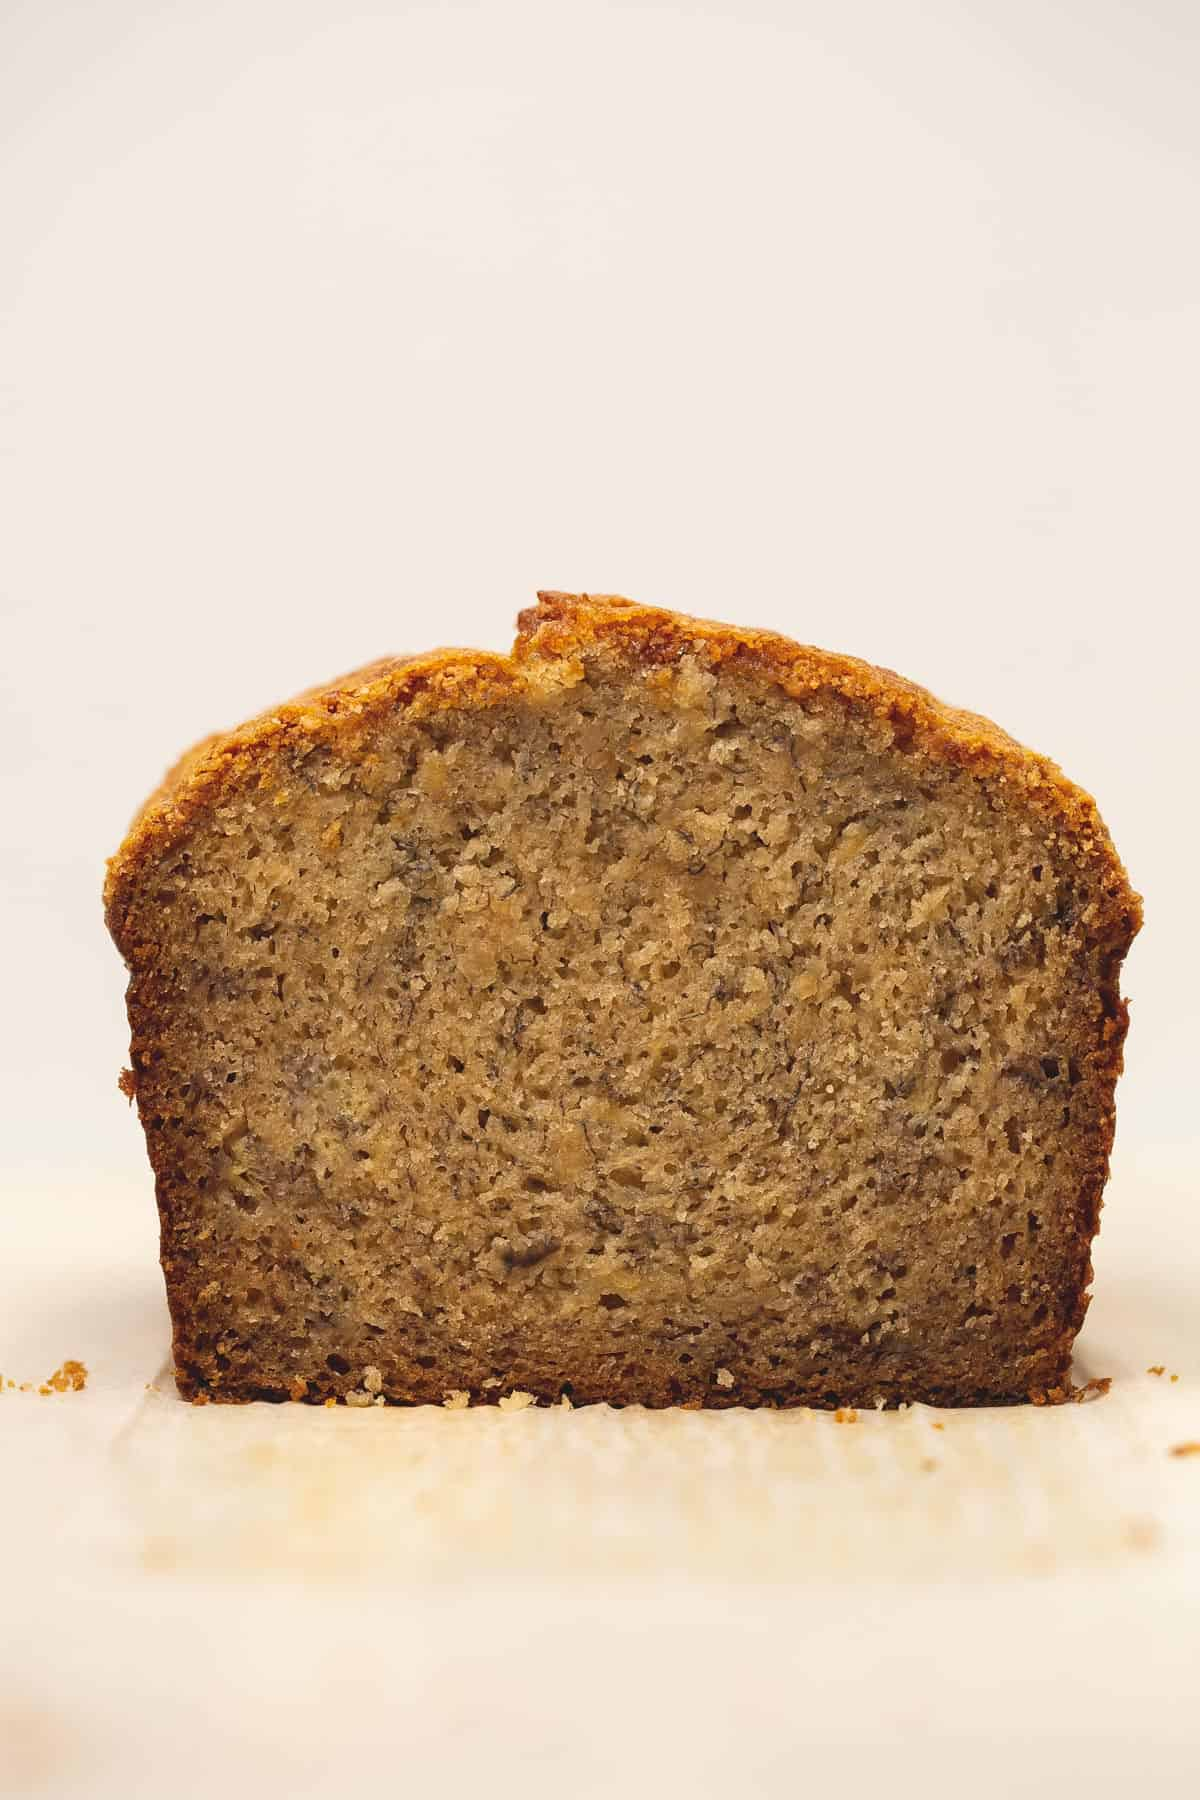 A cross section of banana bread on a parchment paper.